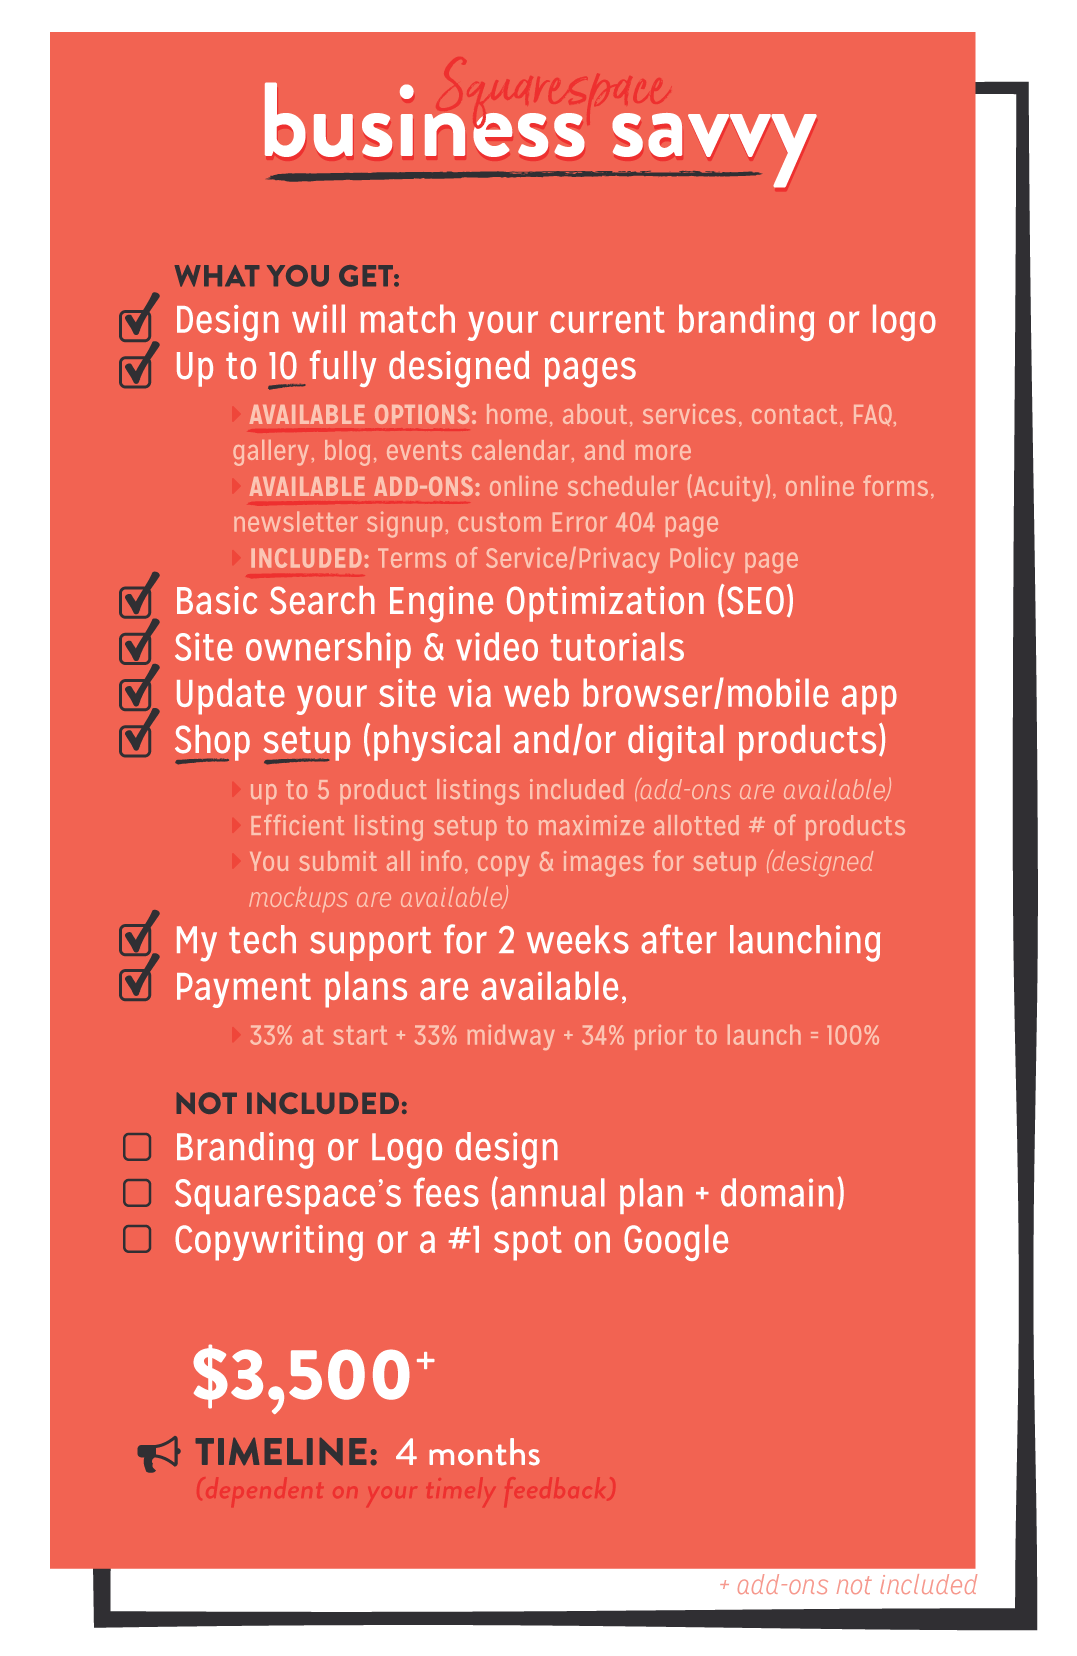 S1862_SquarespaceDesignPackage_Business-Savvy.png